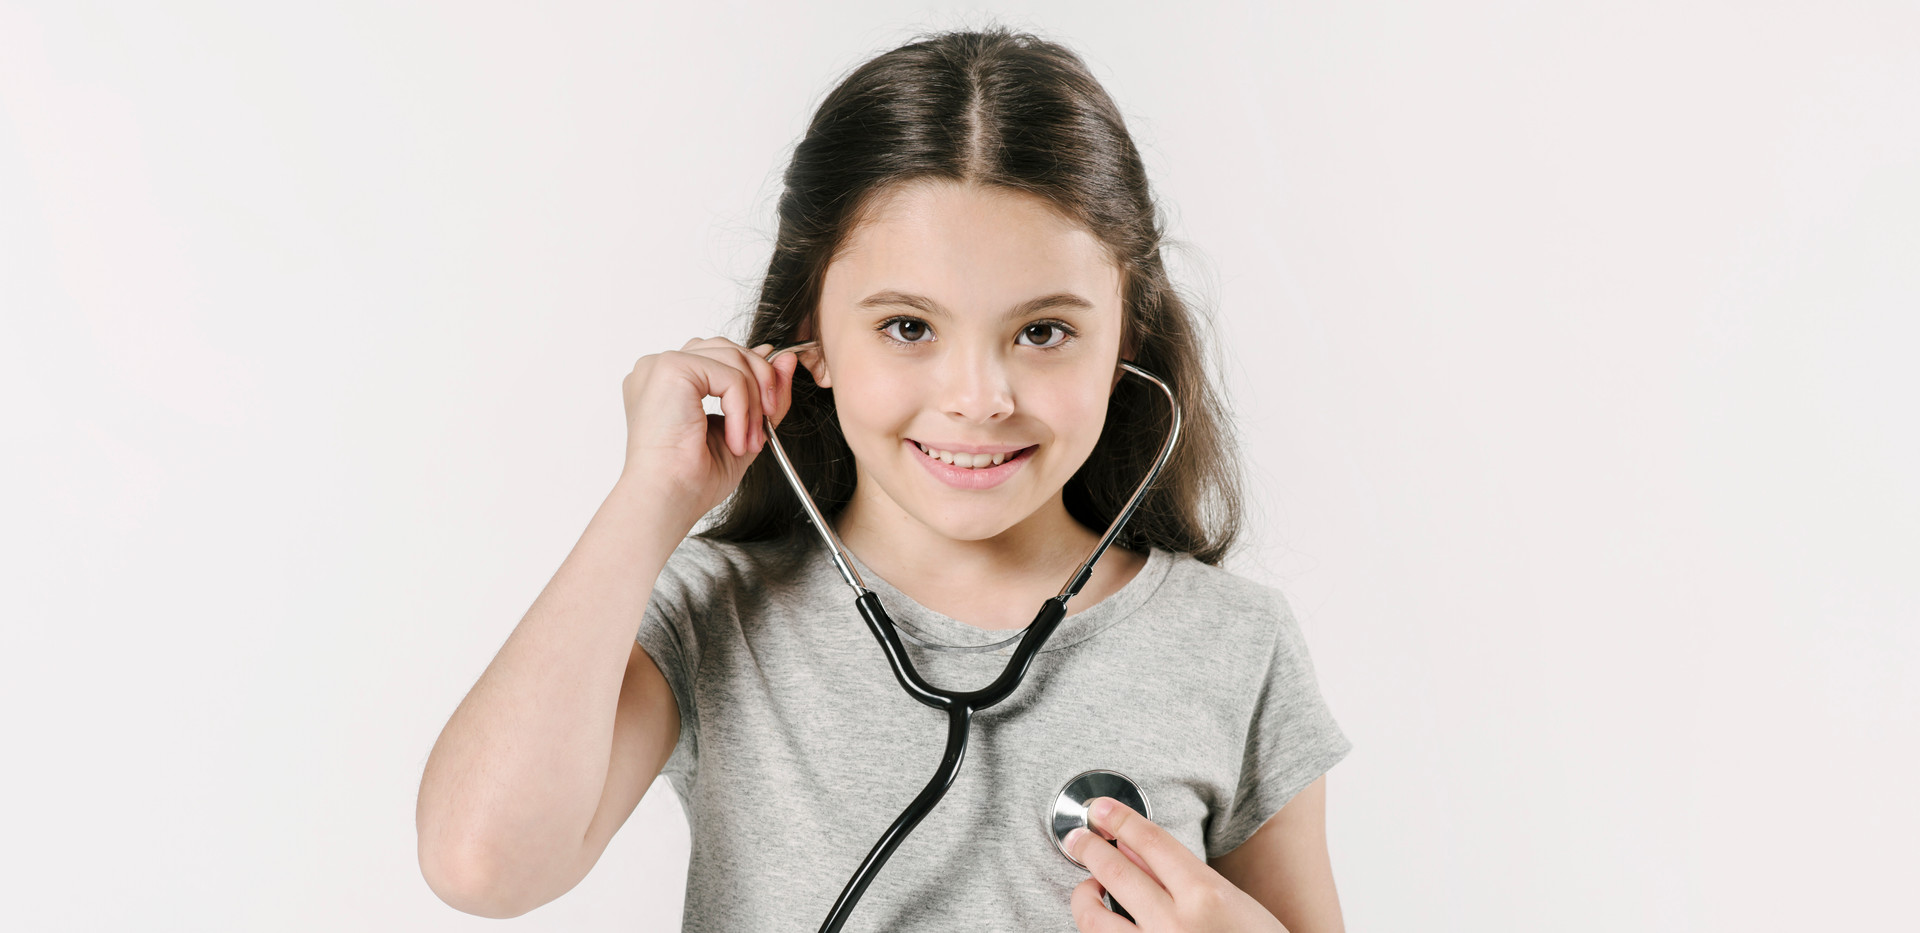 Little-girl-exploring-heartbeat-with-ste